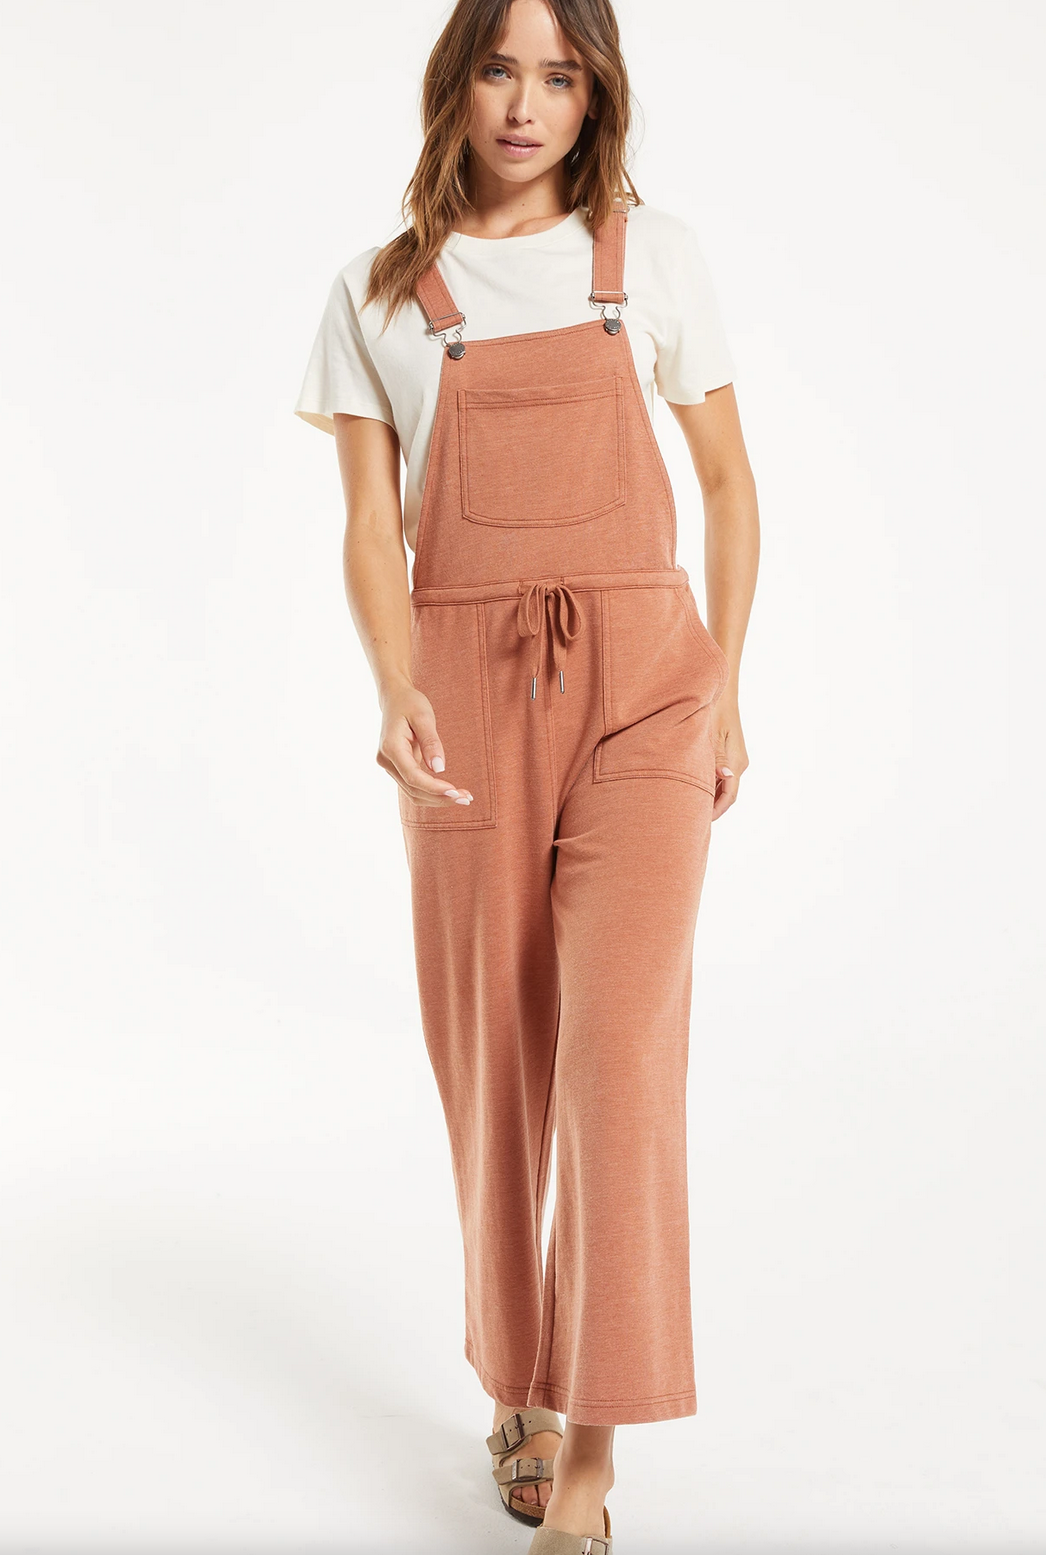 Z Supply Cinched Waist Overalls- Rust-FINAL SALE